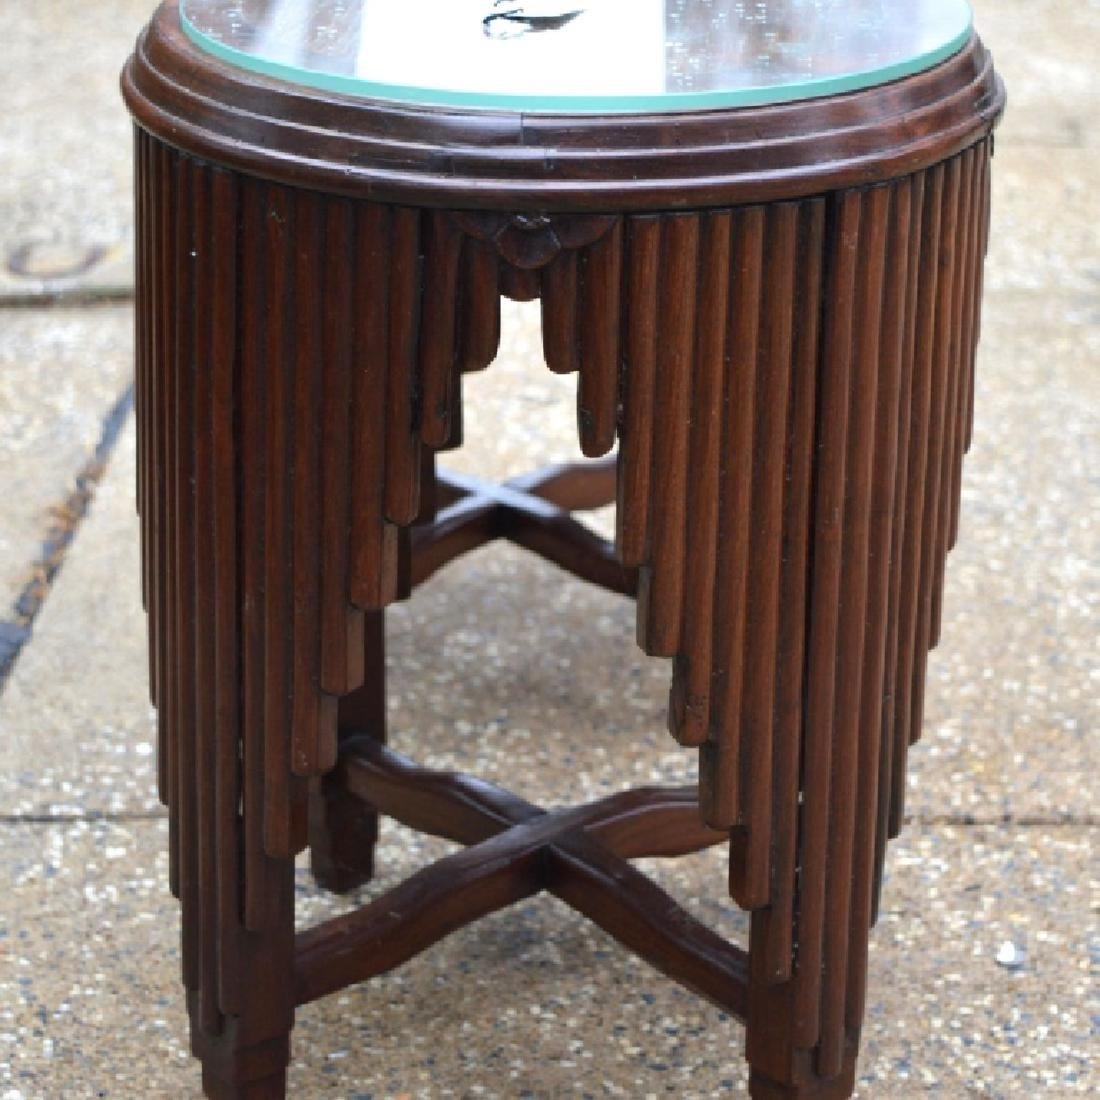 Sotheby's: Chinese Art Deco Hardwood Small Tables - 4